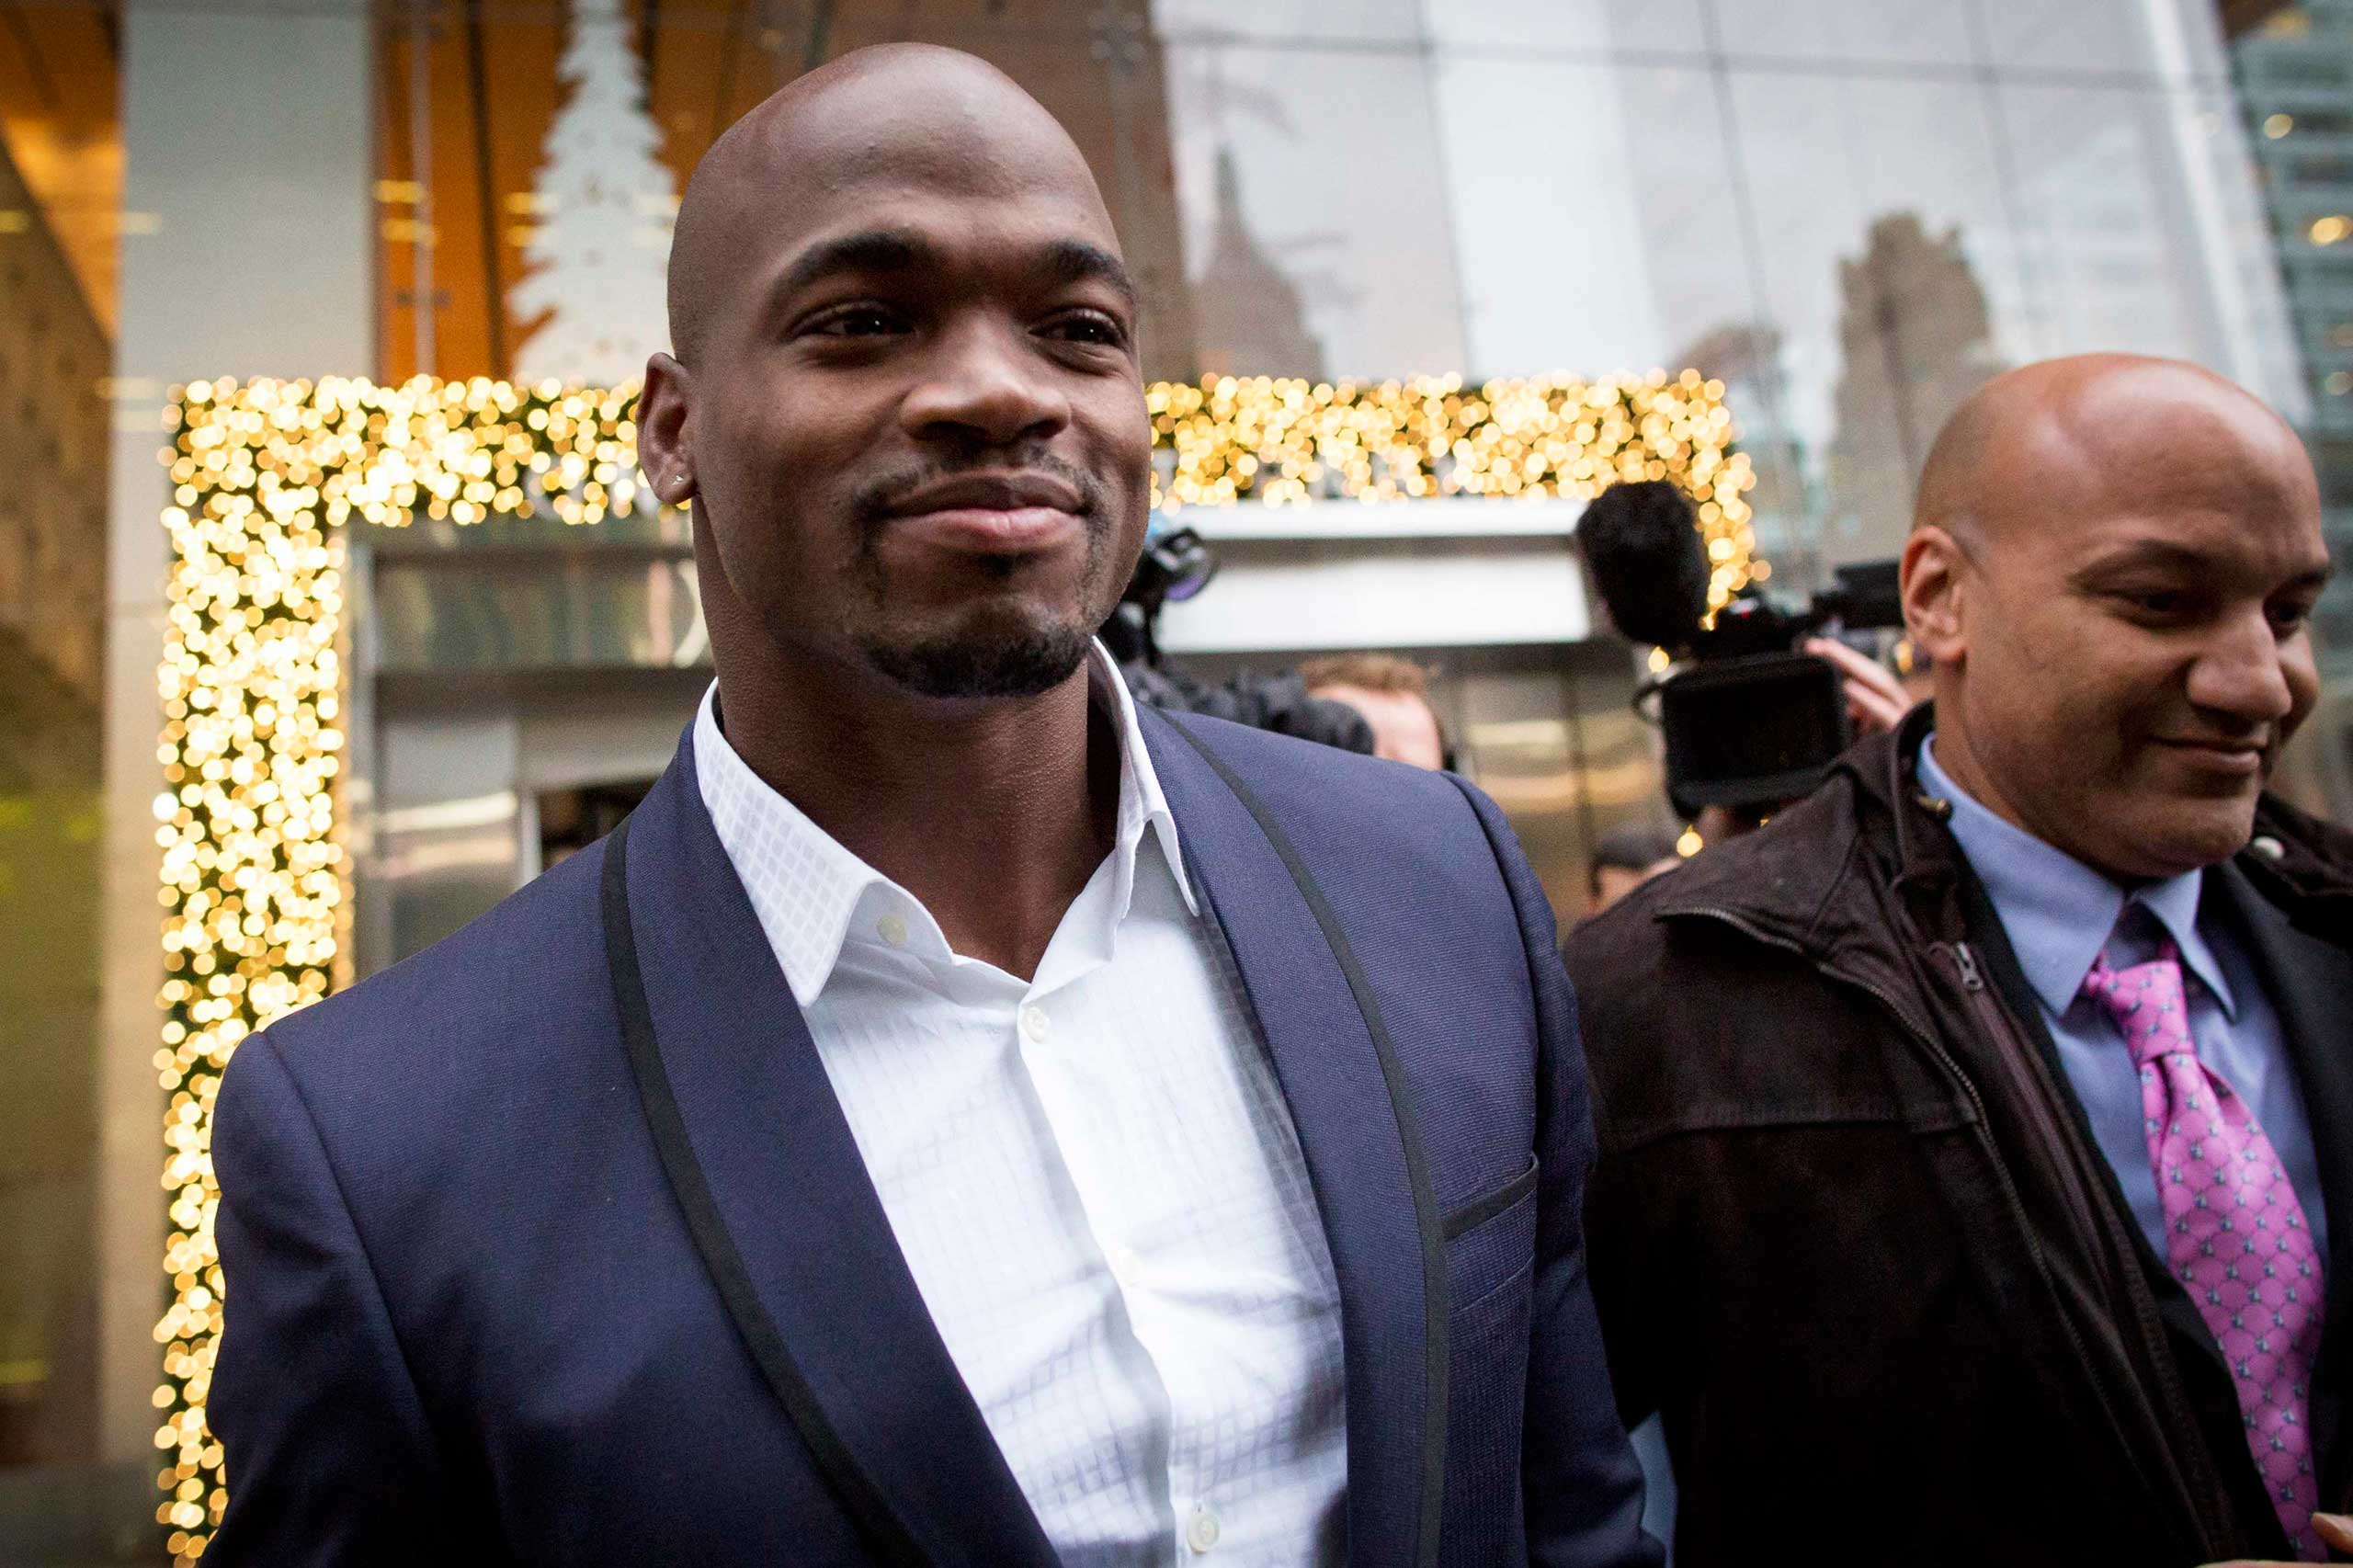 Suspended Minnesota Vikings running back Adrian Peterson (L) exits following his hearing against the NFL over his punishment for child abuse, in  New York City on Dec. 2, 2014.